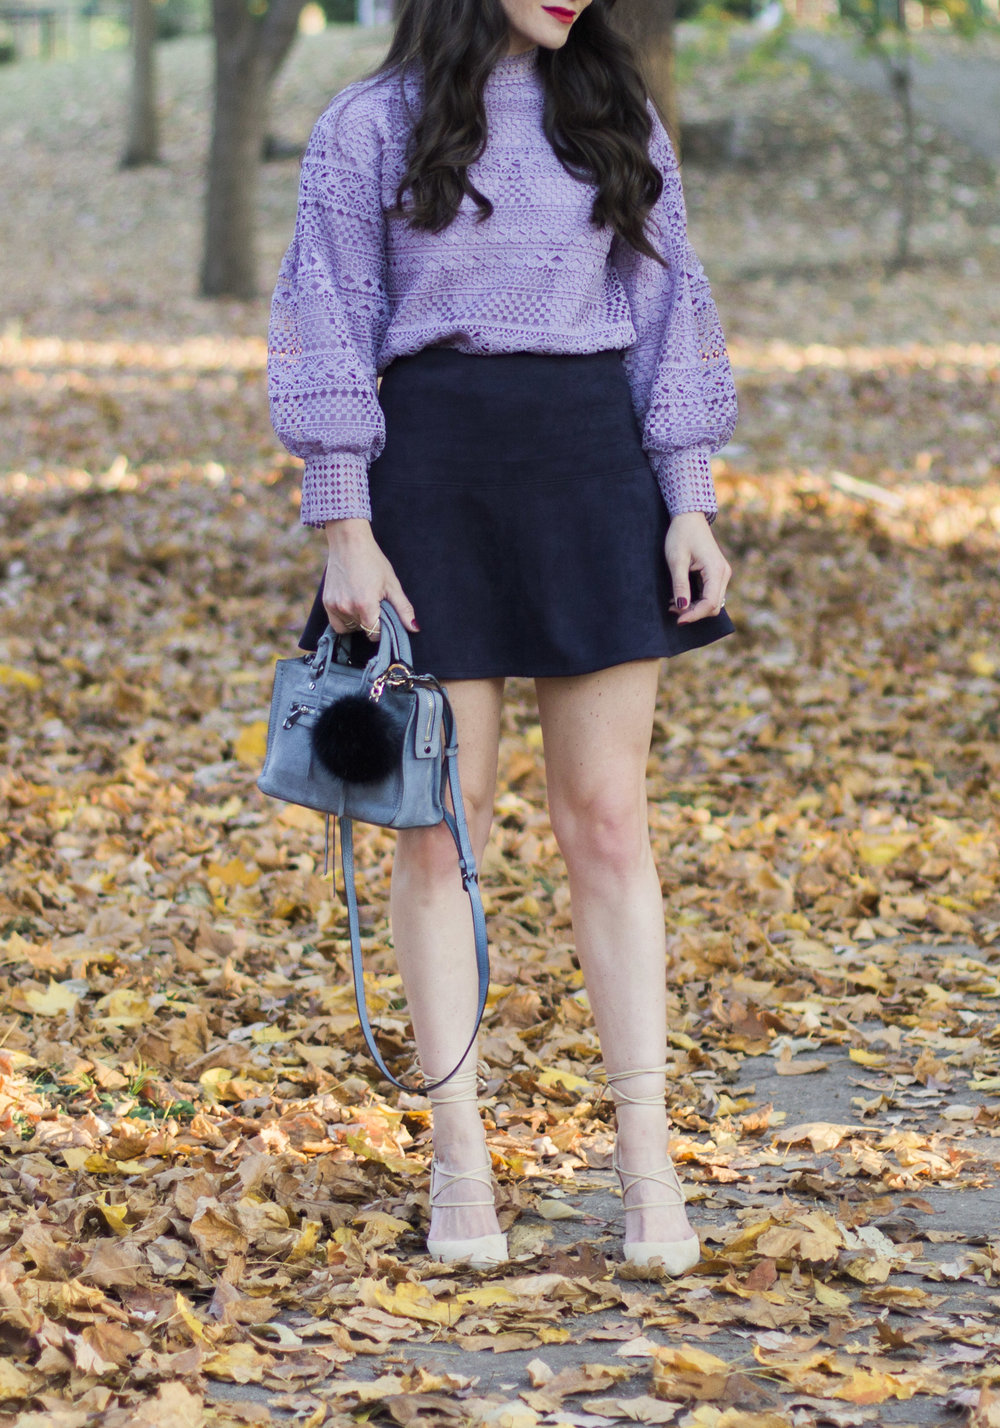 Easy and inexpensive holiday outfit ideas, Chicwish autumnal elegance crochet top, BB Dakota Abrams skirt, Sam Edelman Helaine pumps, Rebecca Minkoff Micro Avery Satchel, Mark & Graham Pompom Keychain.